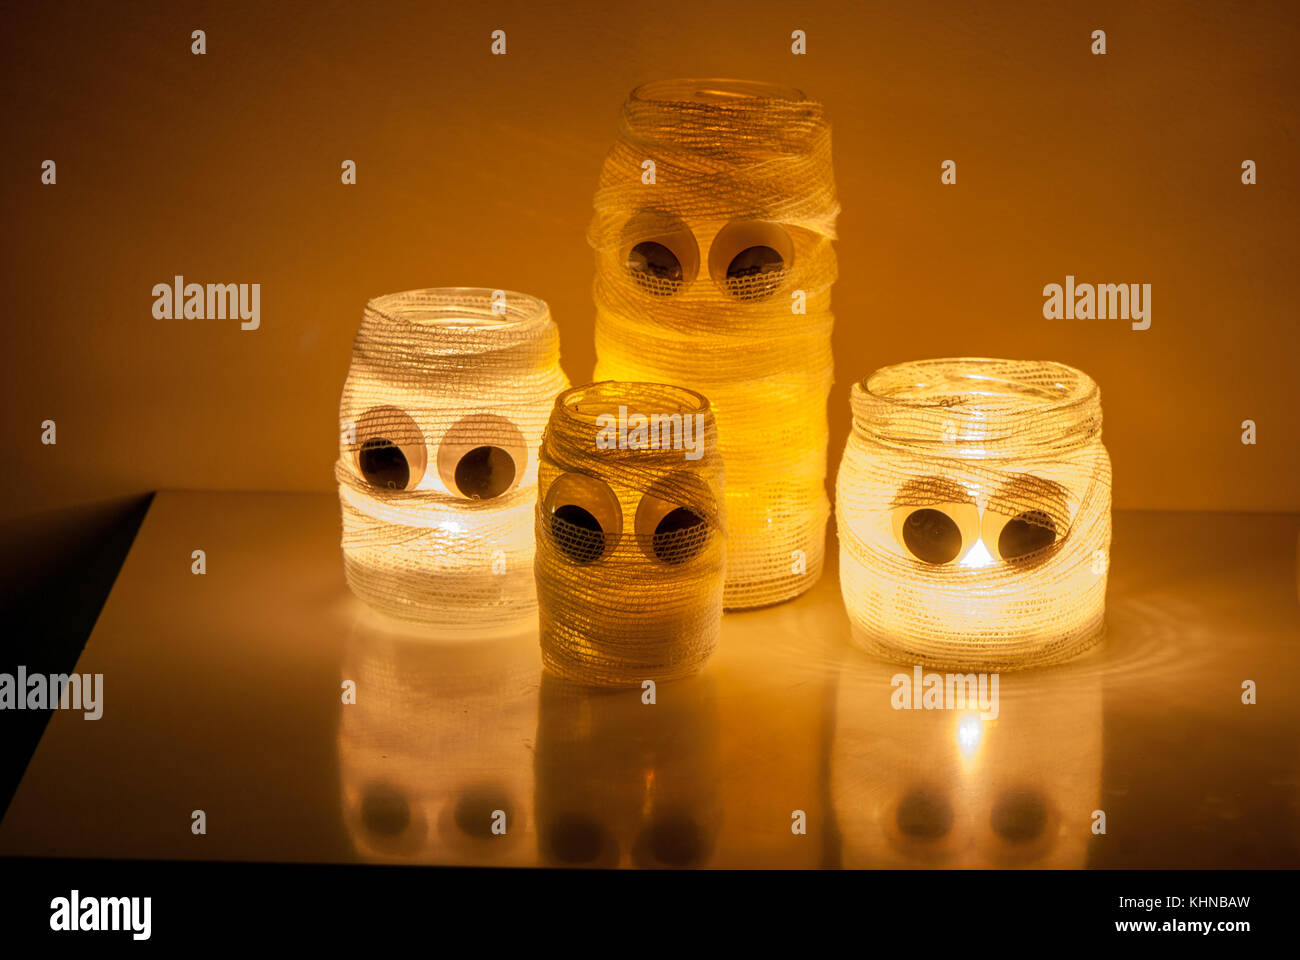 dolls made with glass jars and a candle inside, decorated with bandages, made for Halloween - Stock Image